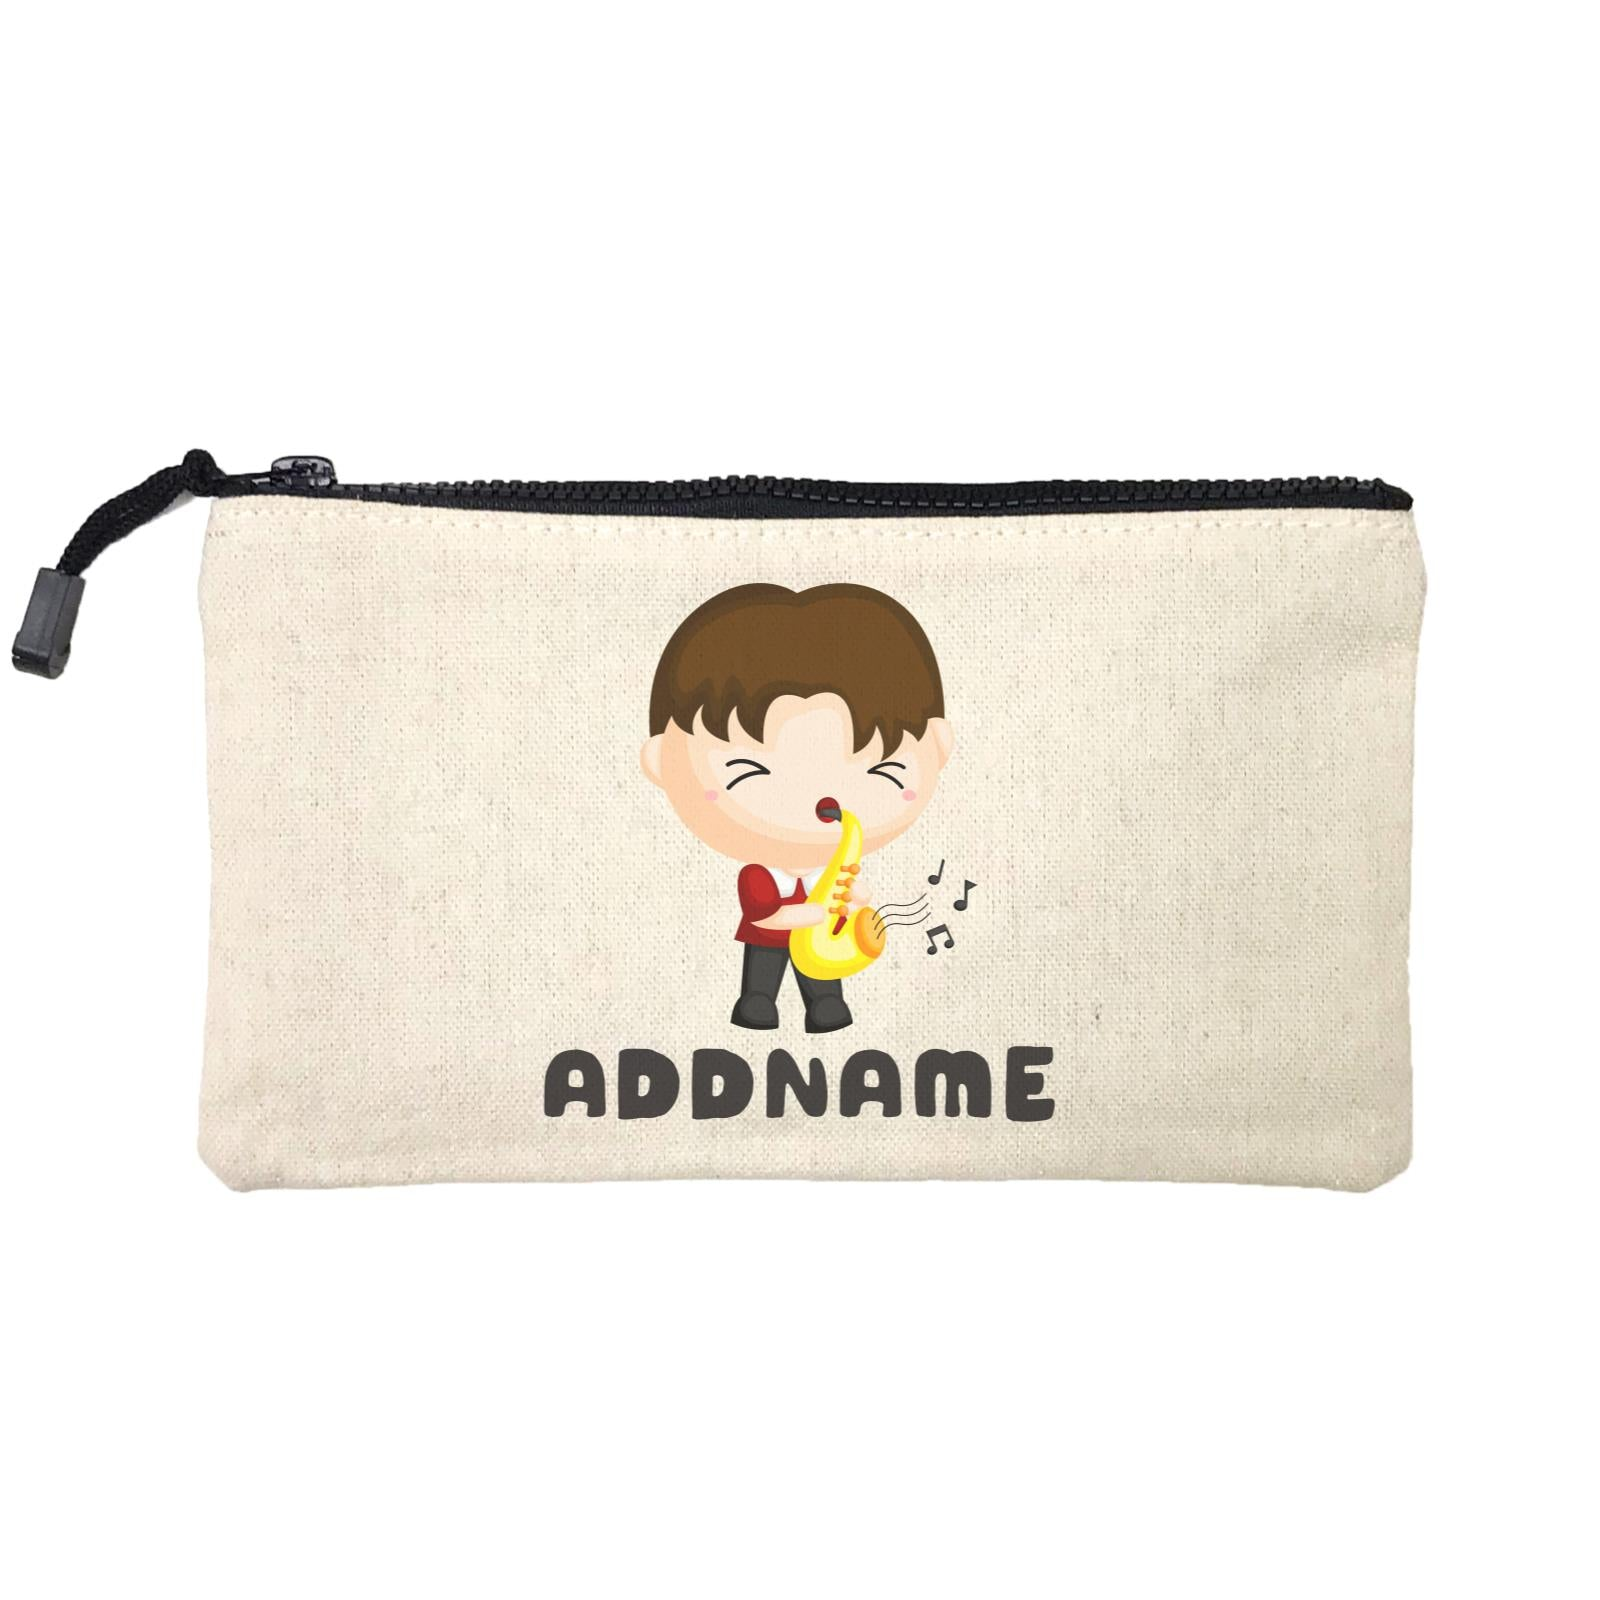 Birthday Music Band Boy Playing Saxophone Addname Mini Accessories Stationery Pouch